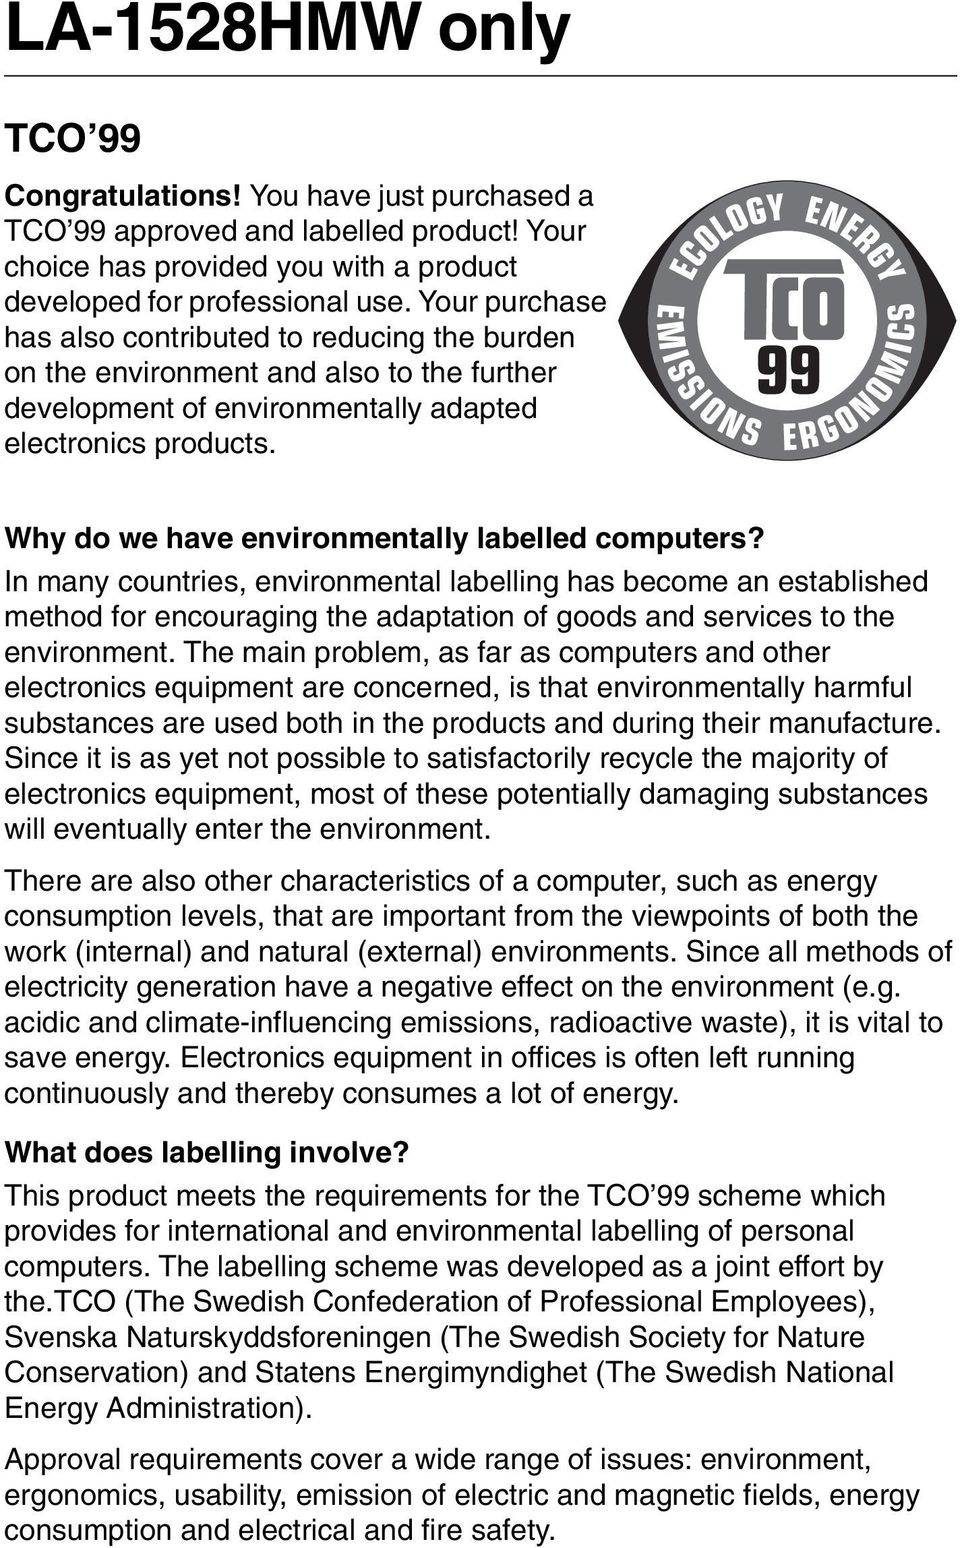 Why do we have environmentally labelled computers? In many countries, environmental labelling has become an established method for encouraging the adaptation of goods and services to the environment.